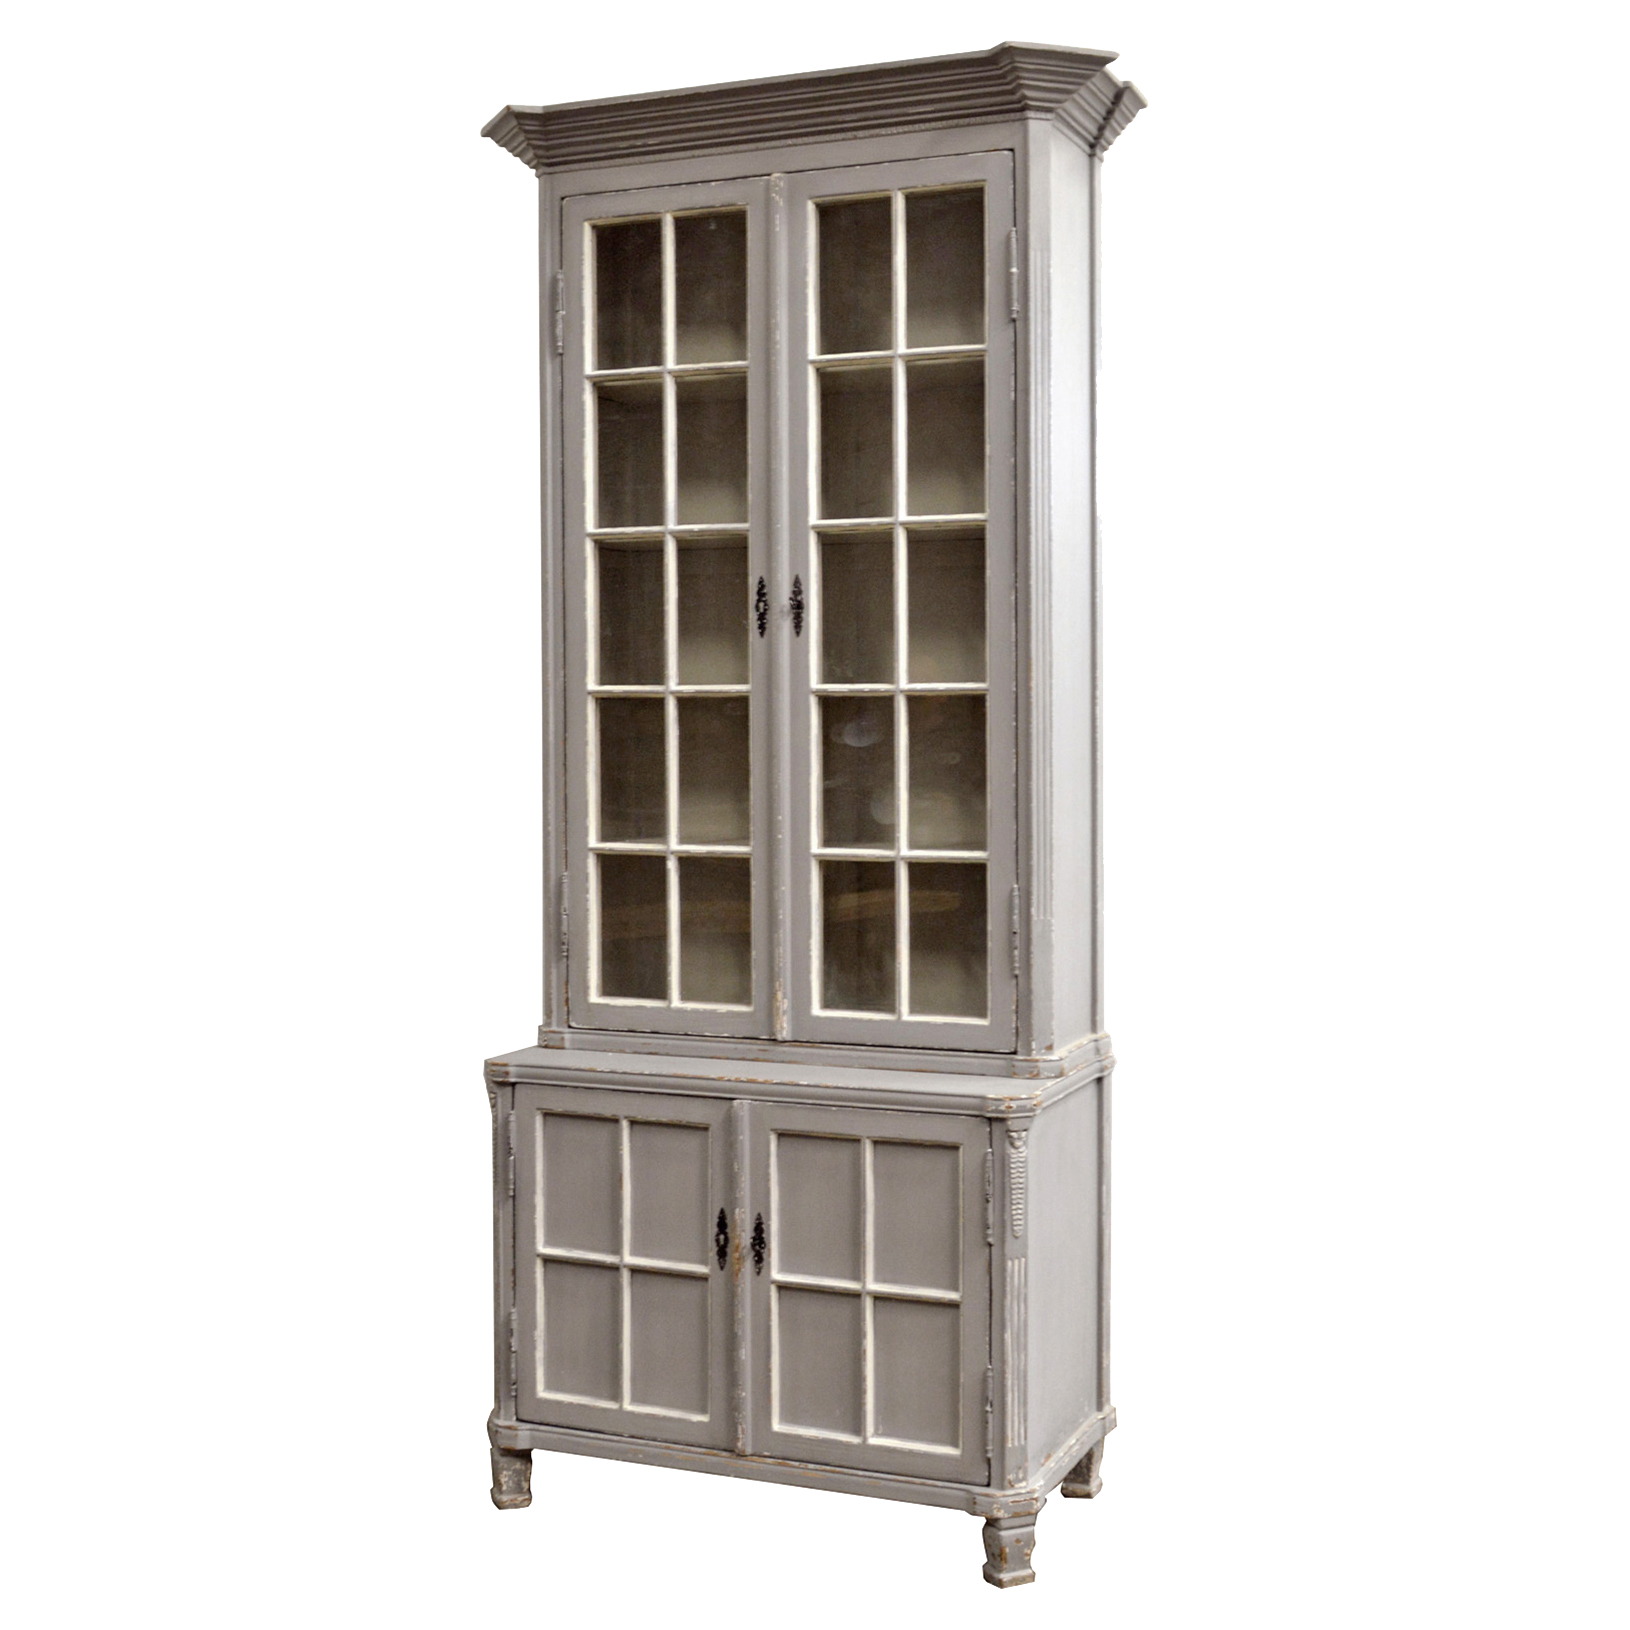 Designer China Cabinets - Eclectic China Cabinets | Kathy Kuo Home